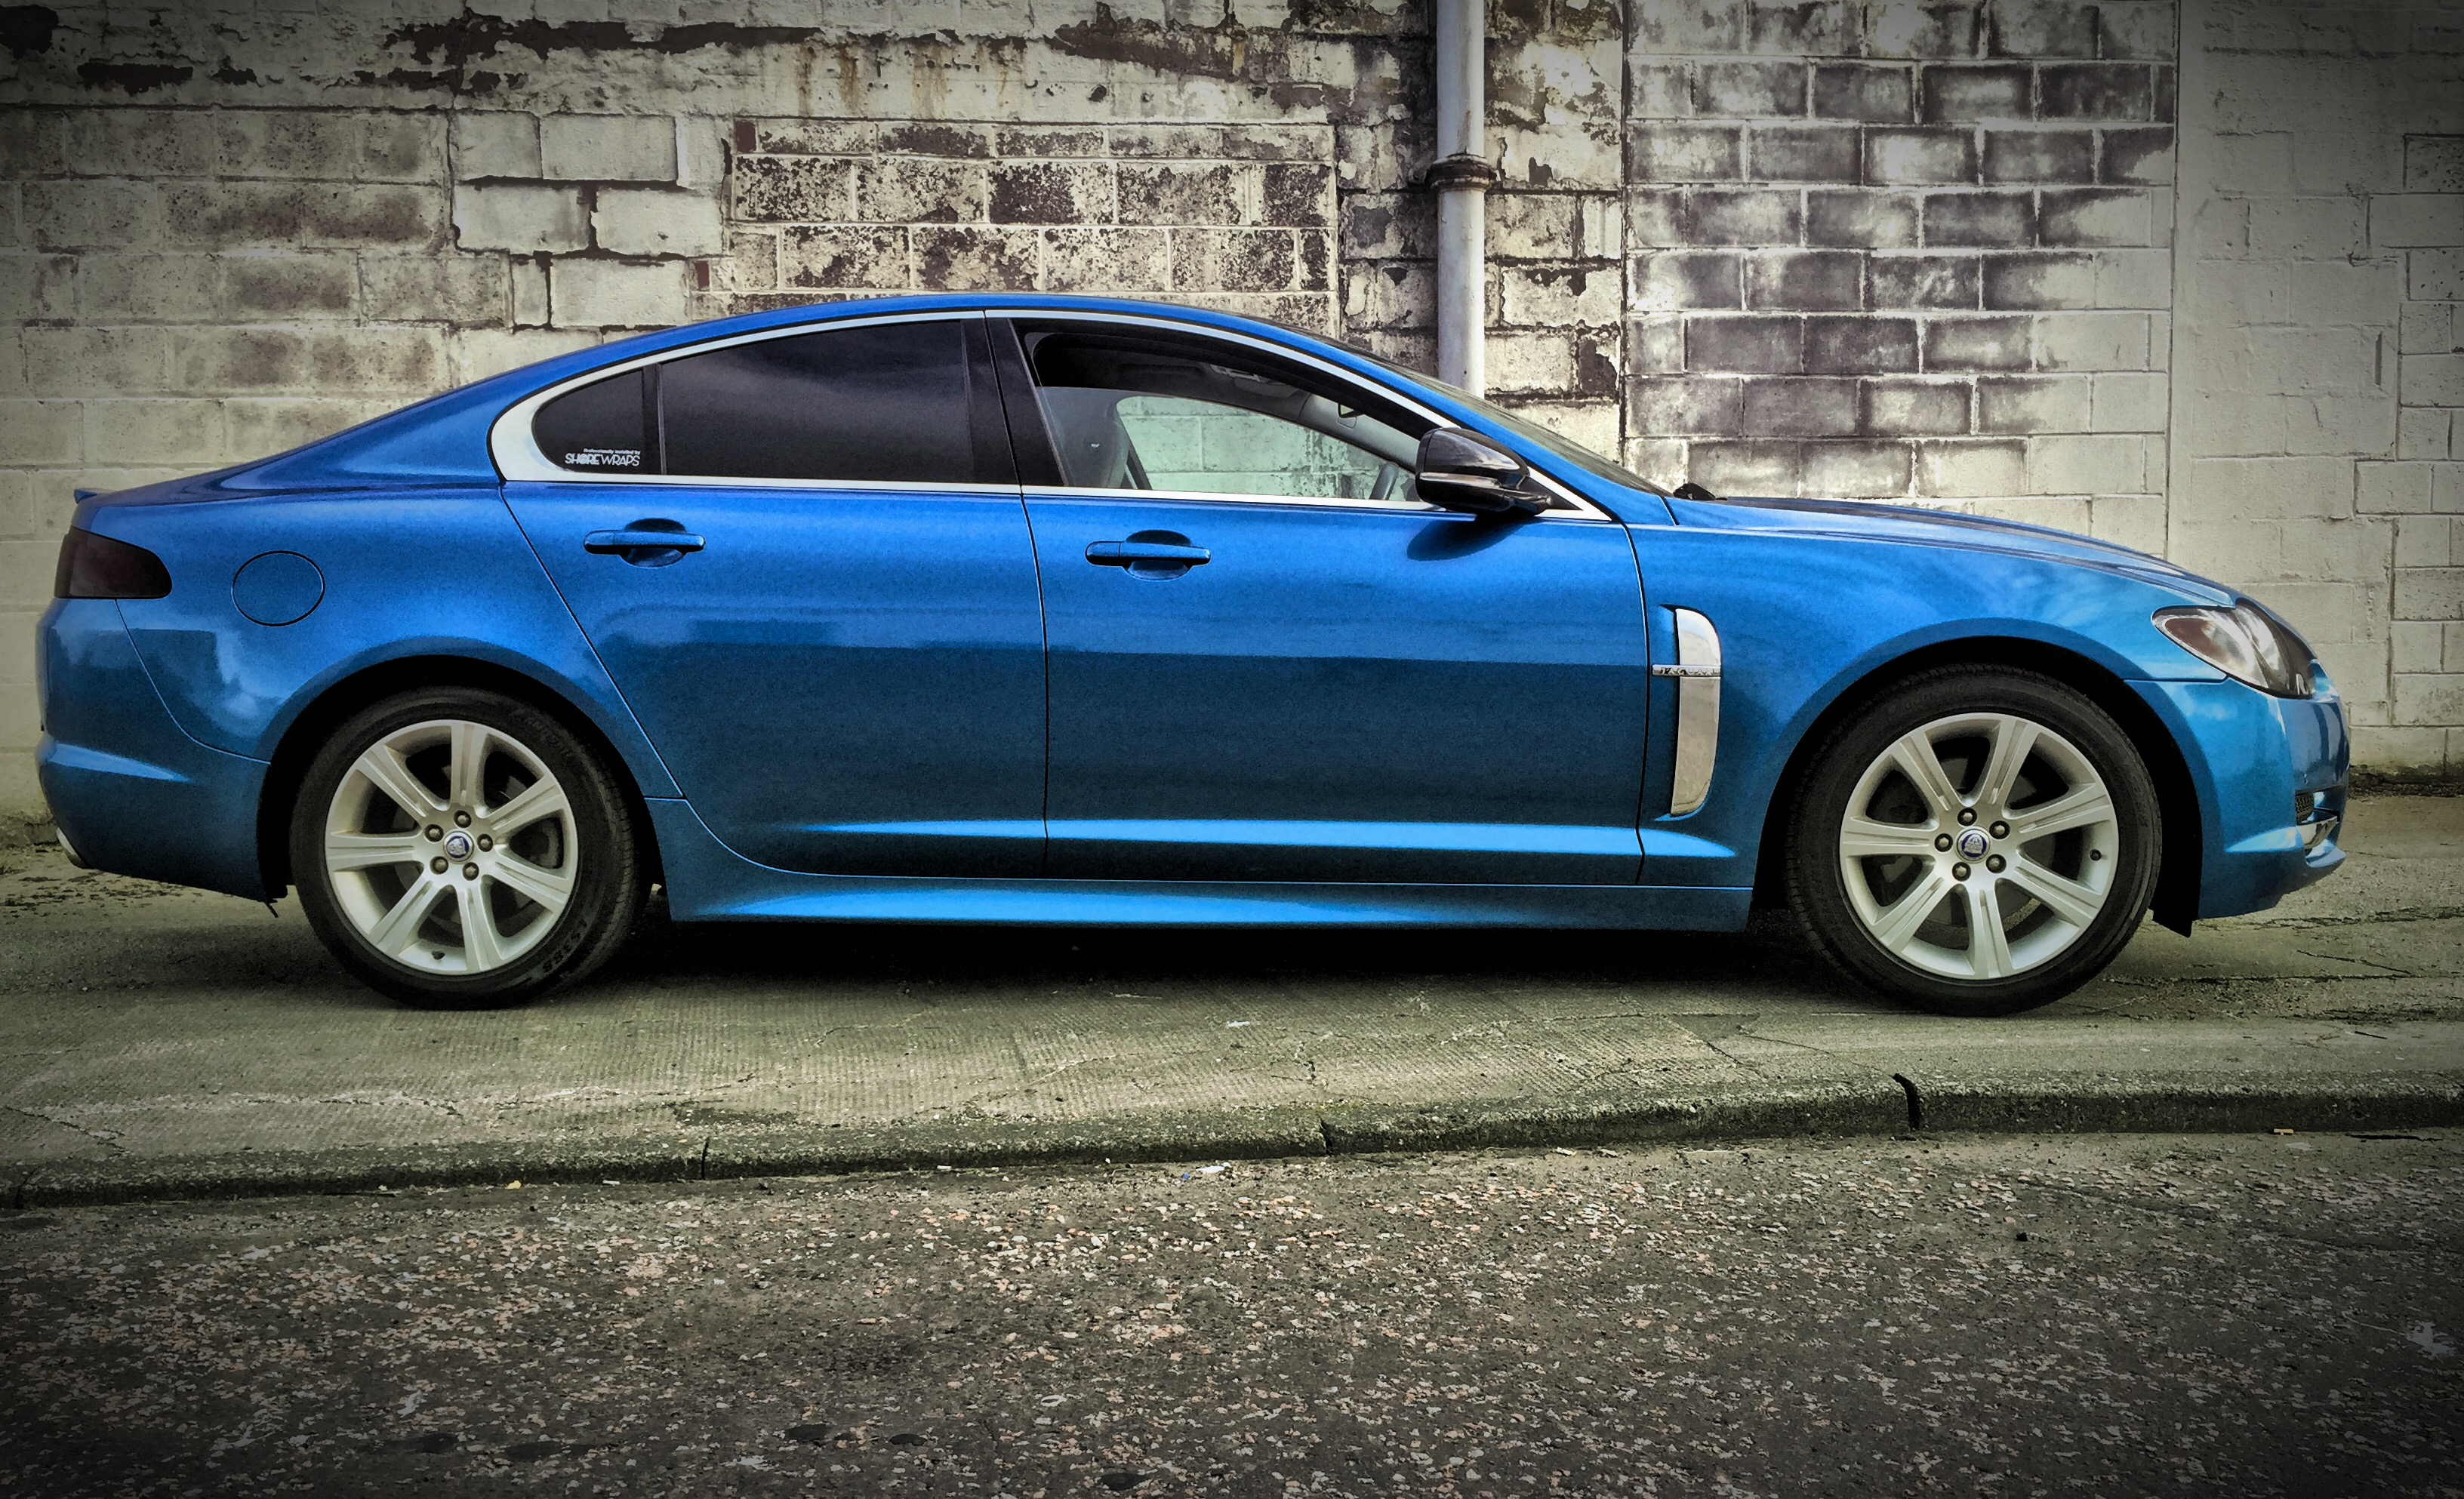 Jaguar XF Blue Wrap